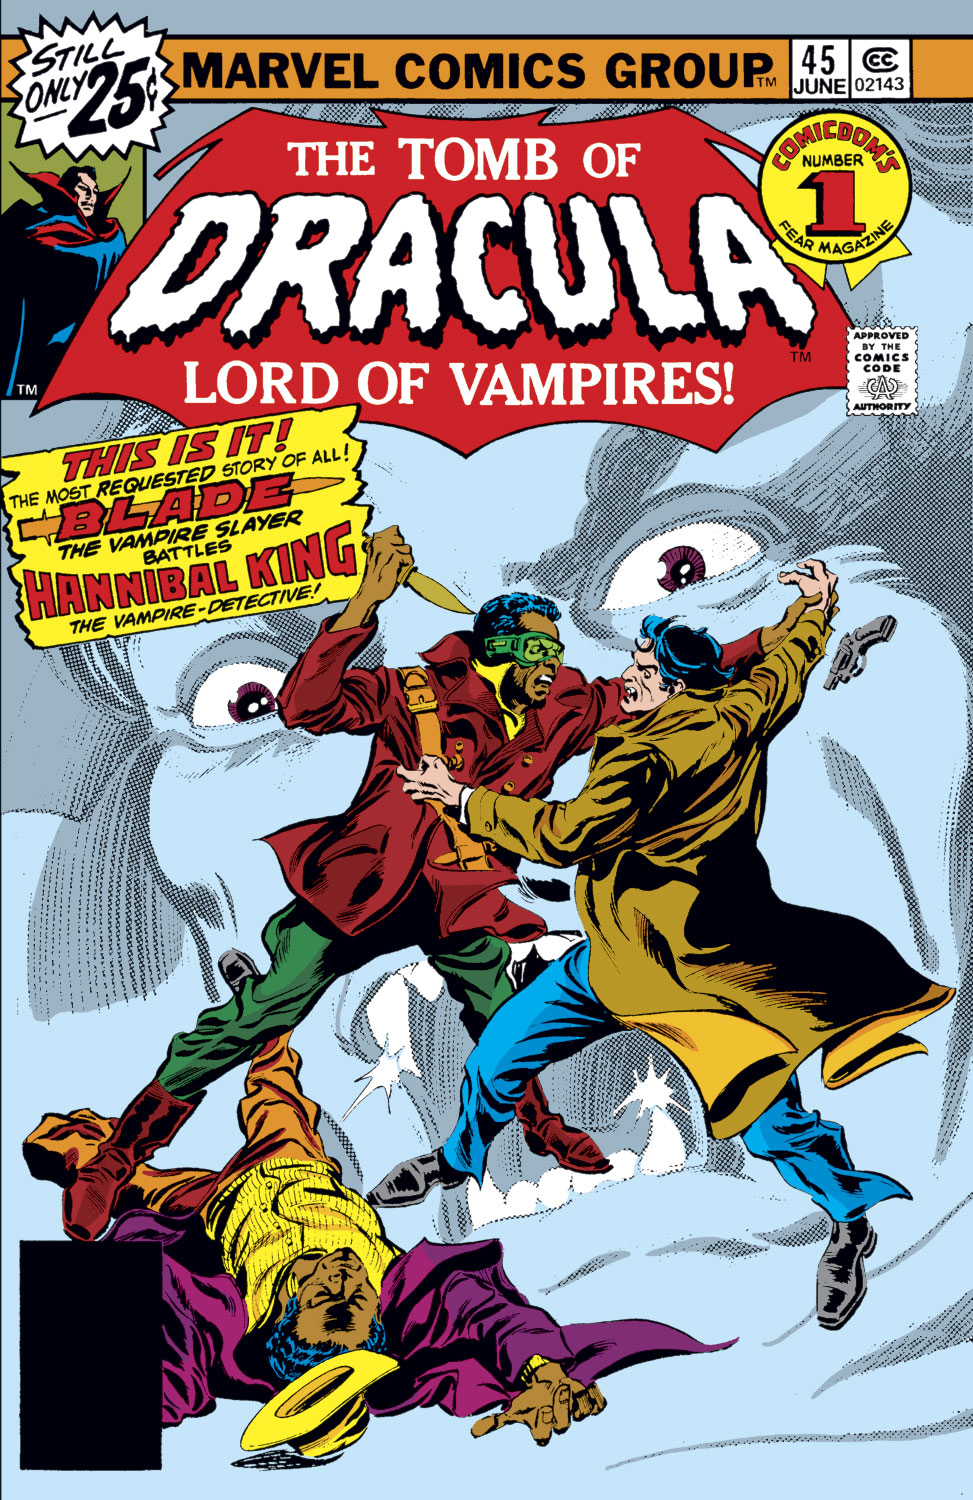 Tomb of Dracula (1972) issue 45 - Page 1